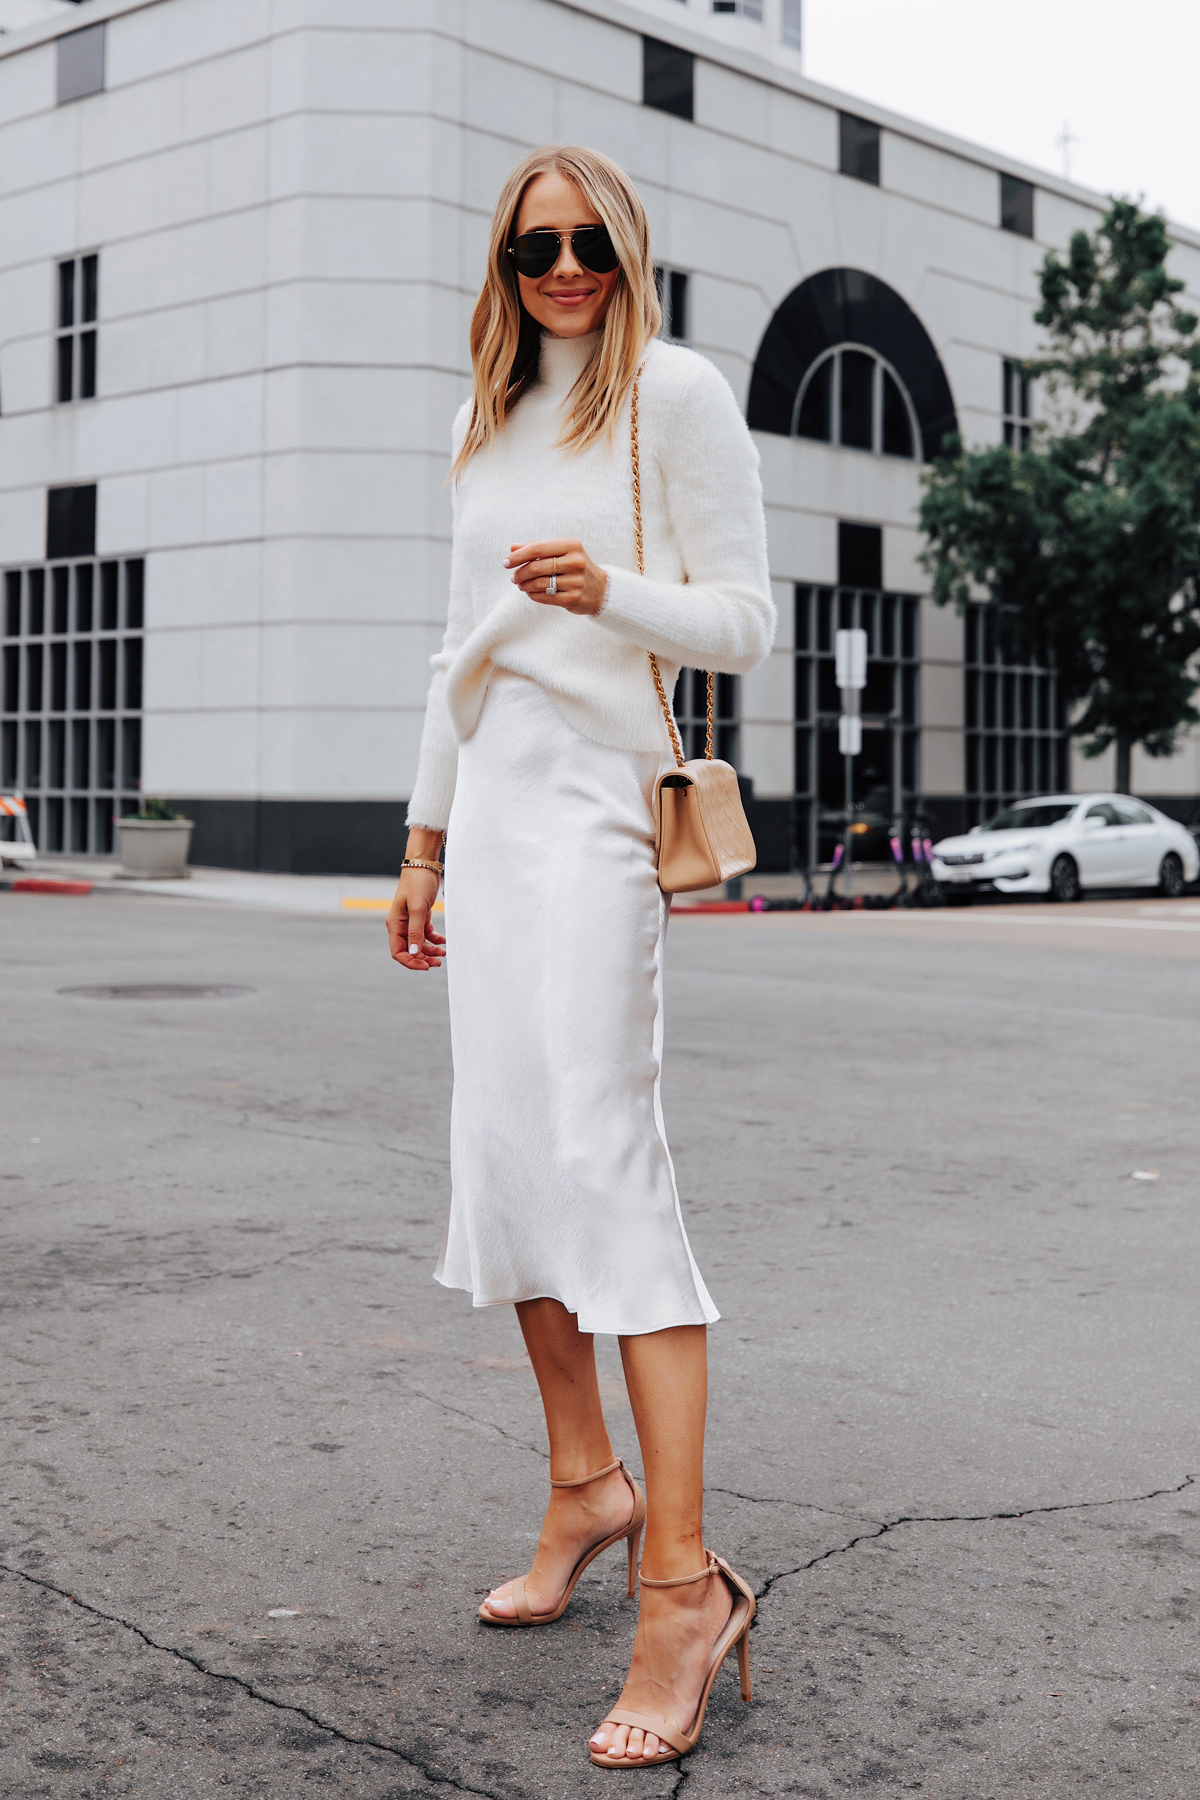 Fashion Jackson Wearing Banana Republic White Fuzzy Sweater White Slip Midi Skirt Winter White Party Outfit.jpg